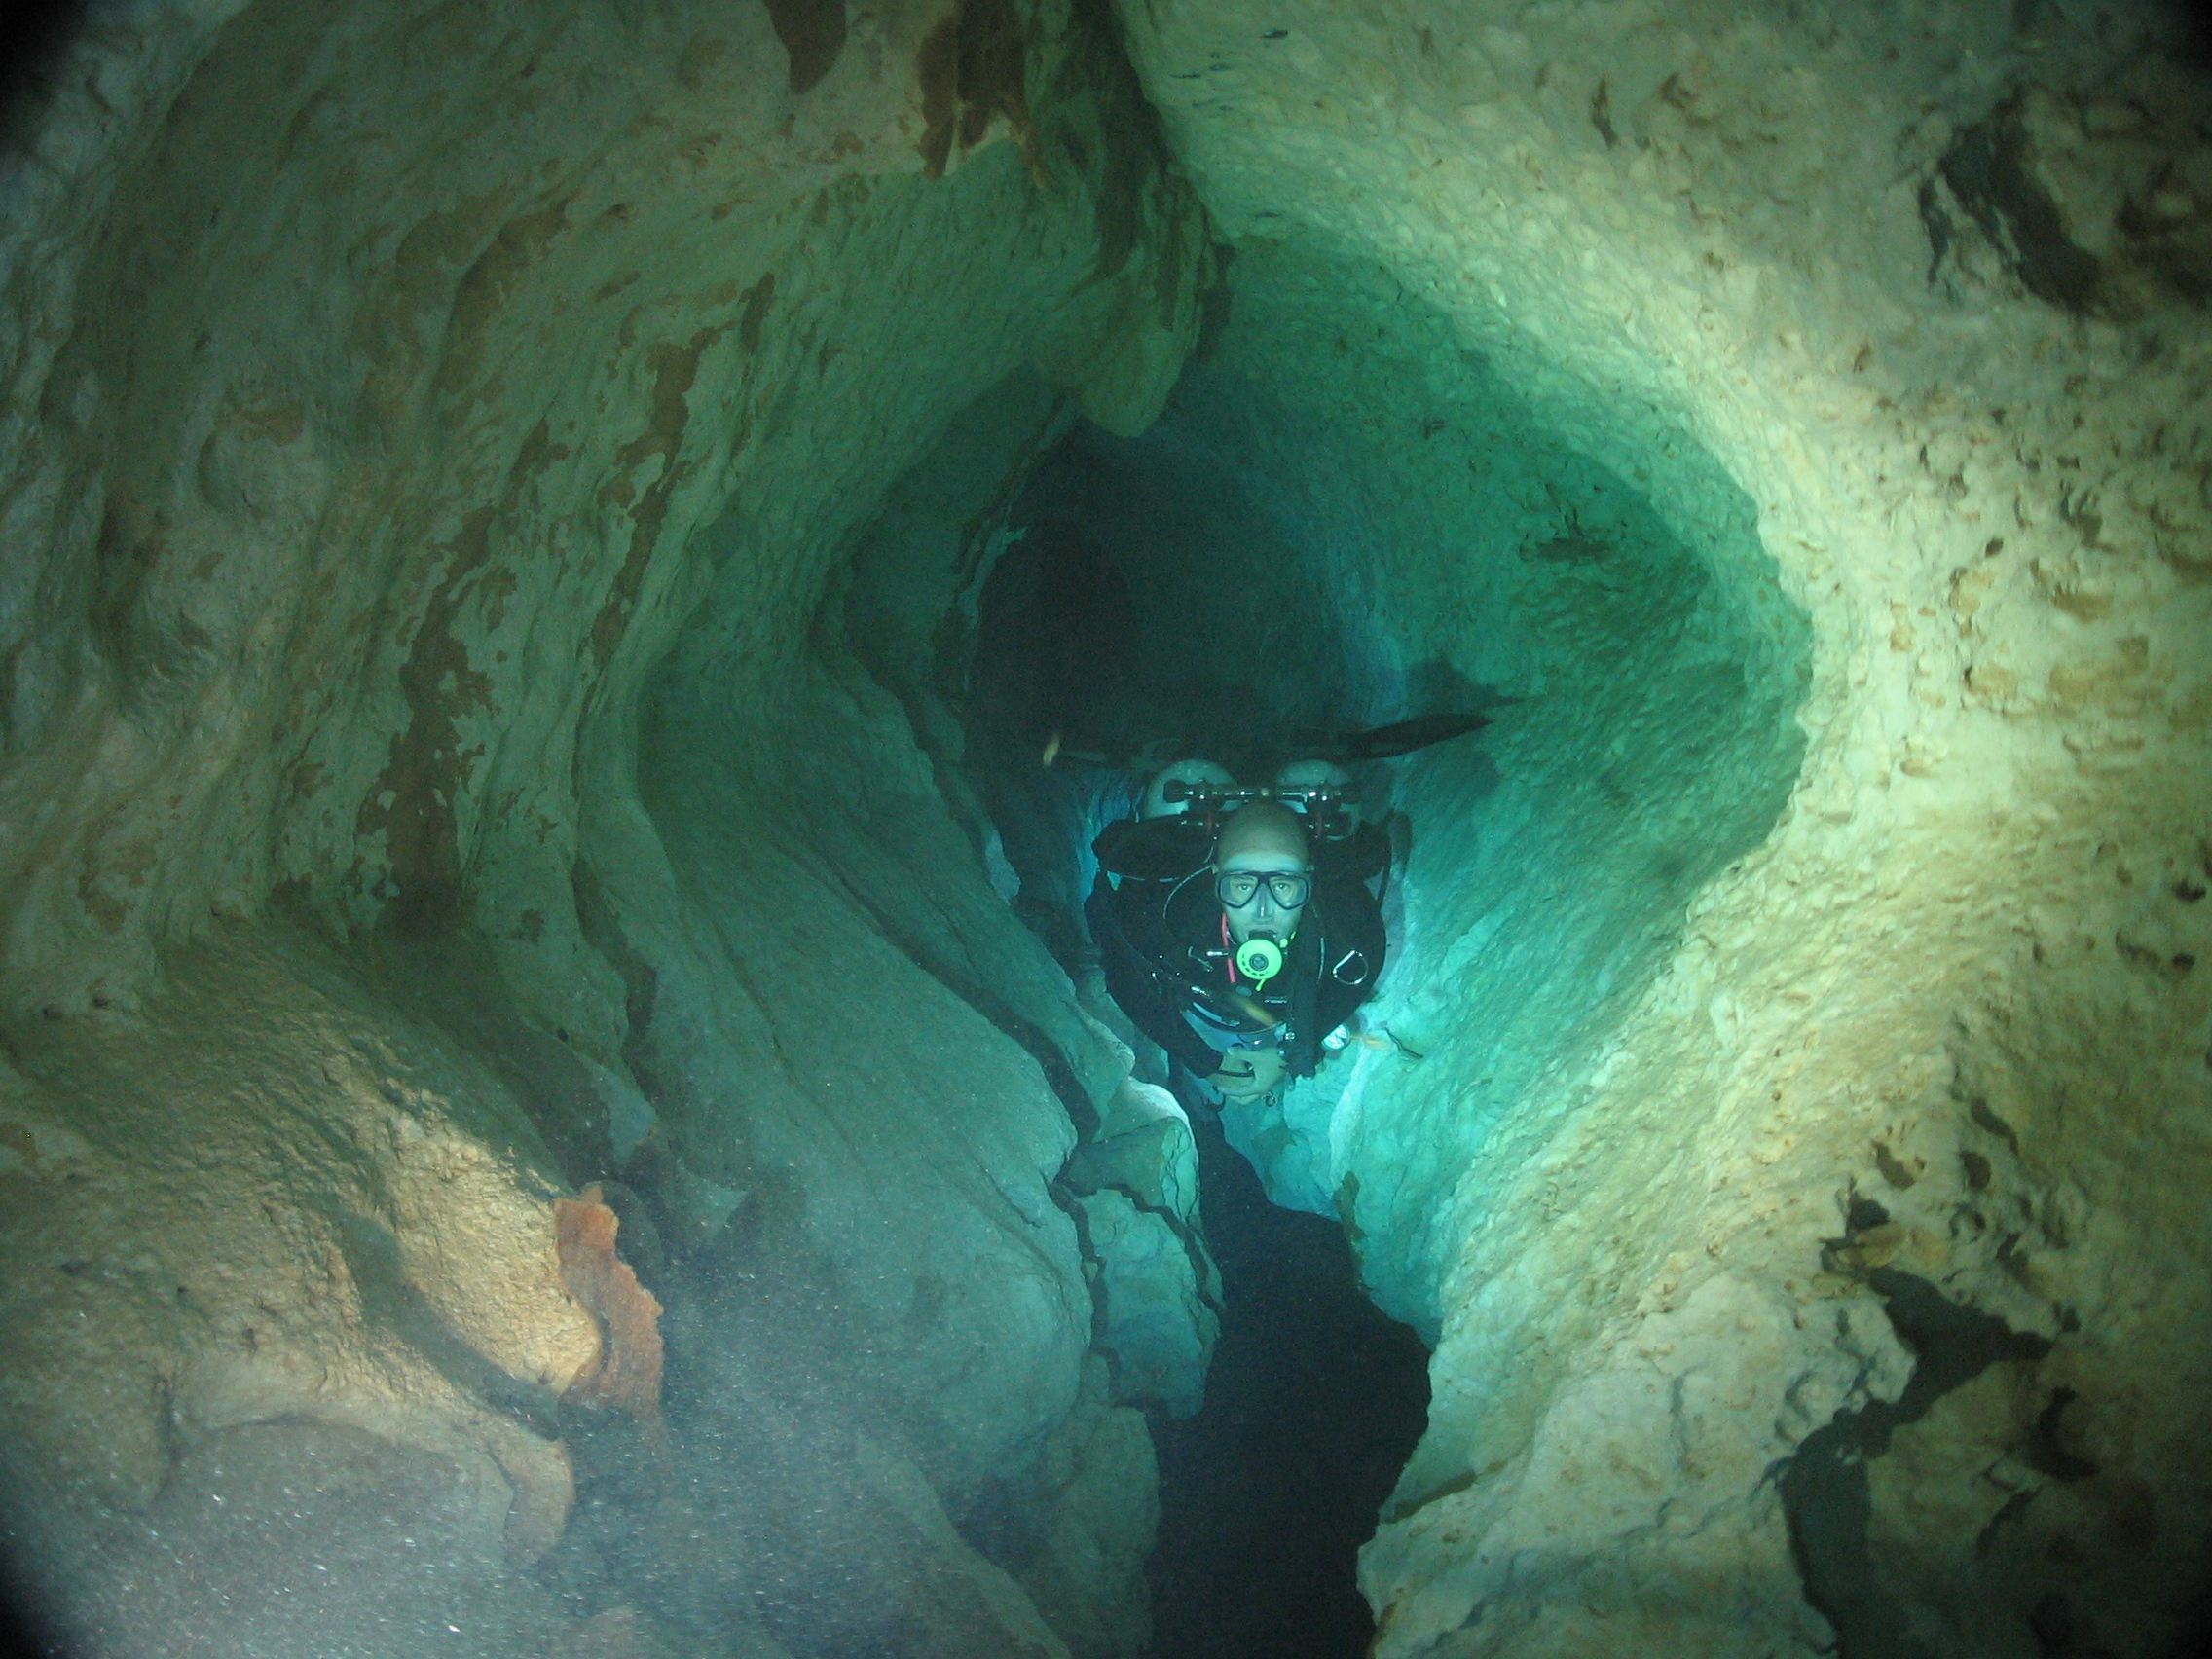 Cave Diving Training In Mexico's UnderGround River Systems